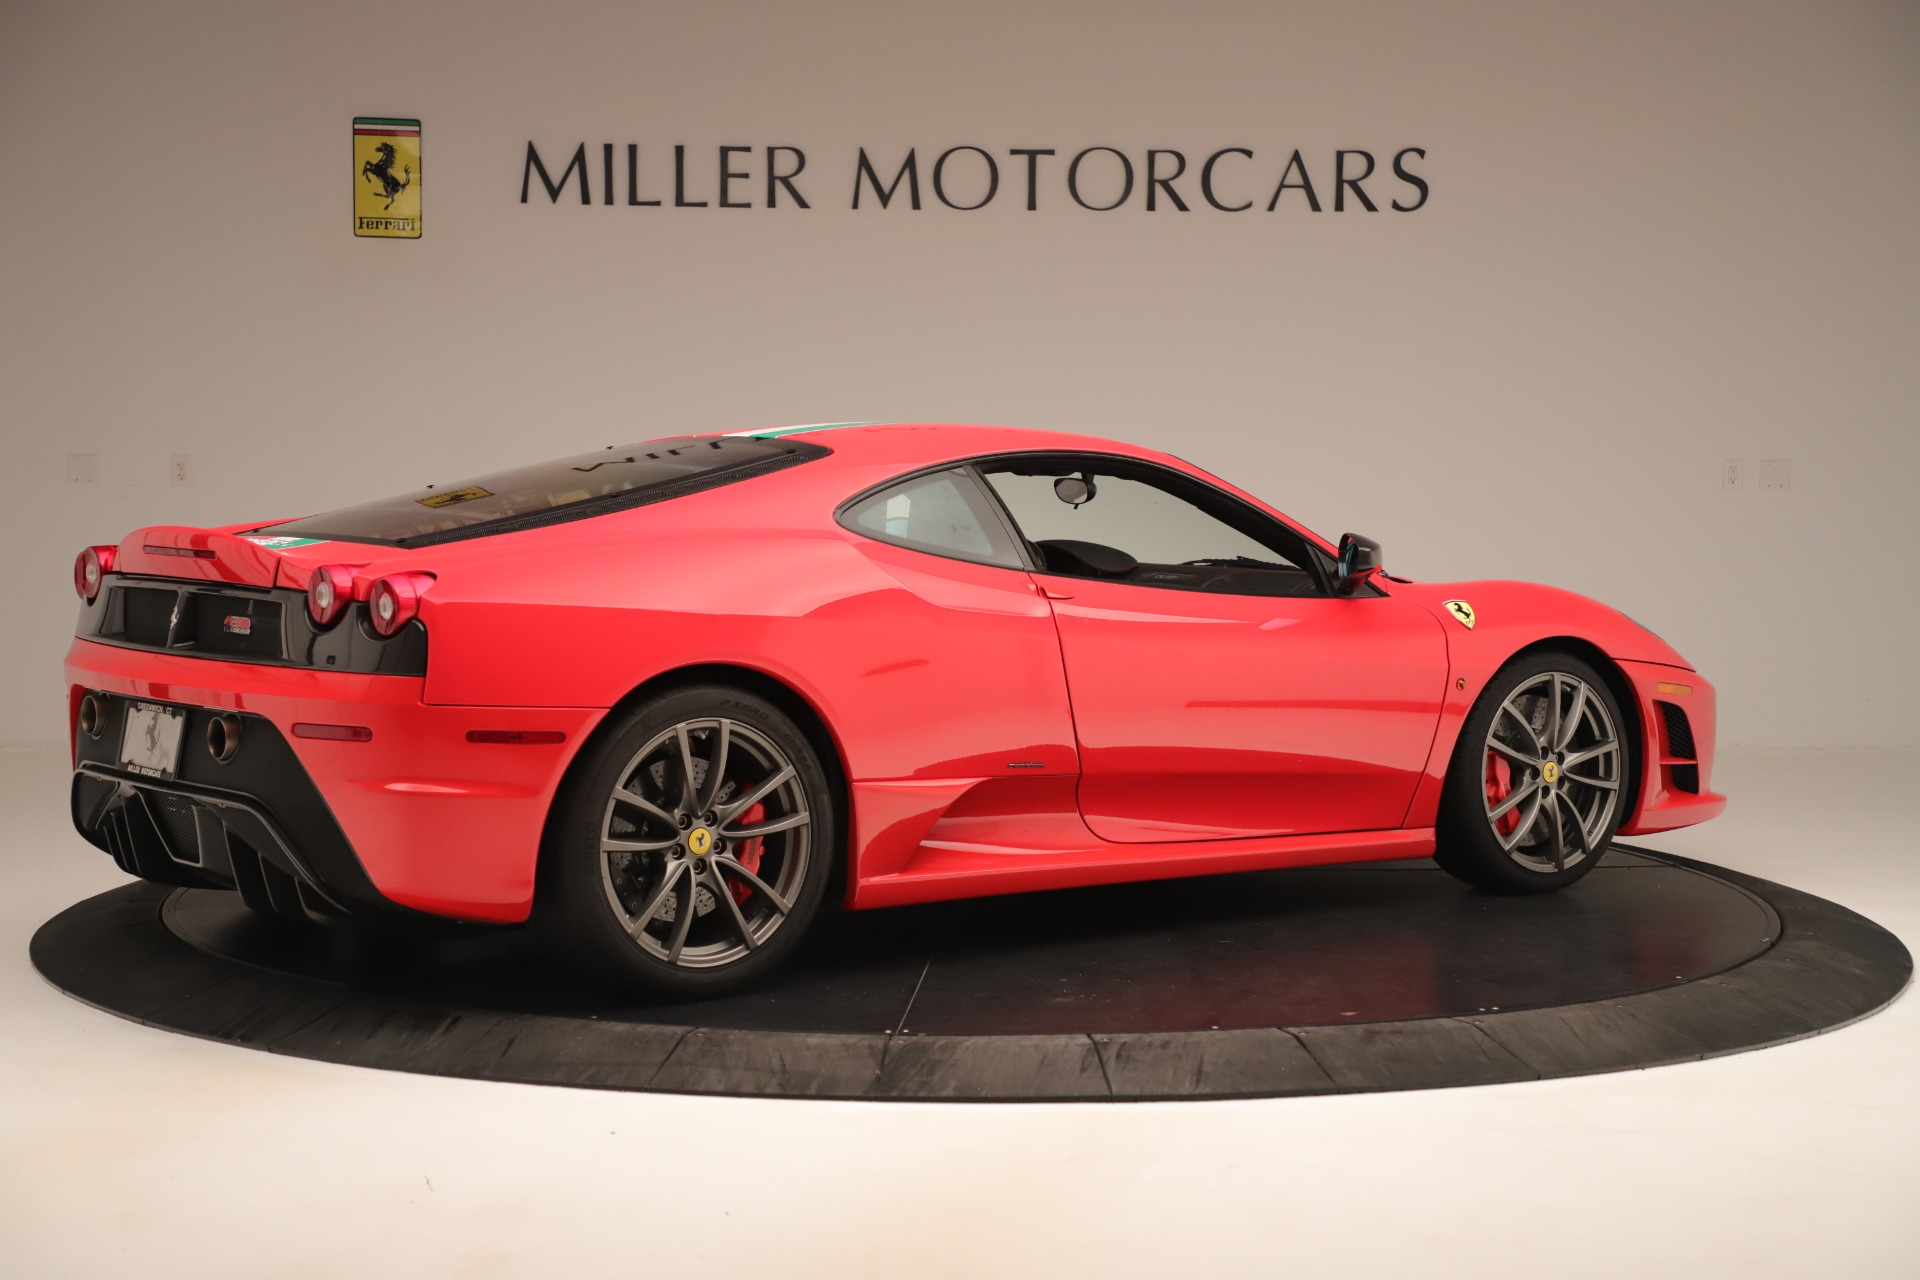 Used 2008 Ferrari F430 Scuderia For Sale In Greenwich, CT 3381_p8